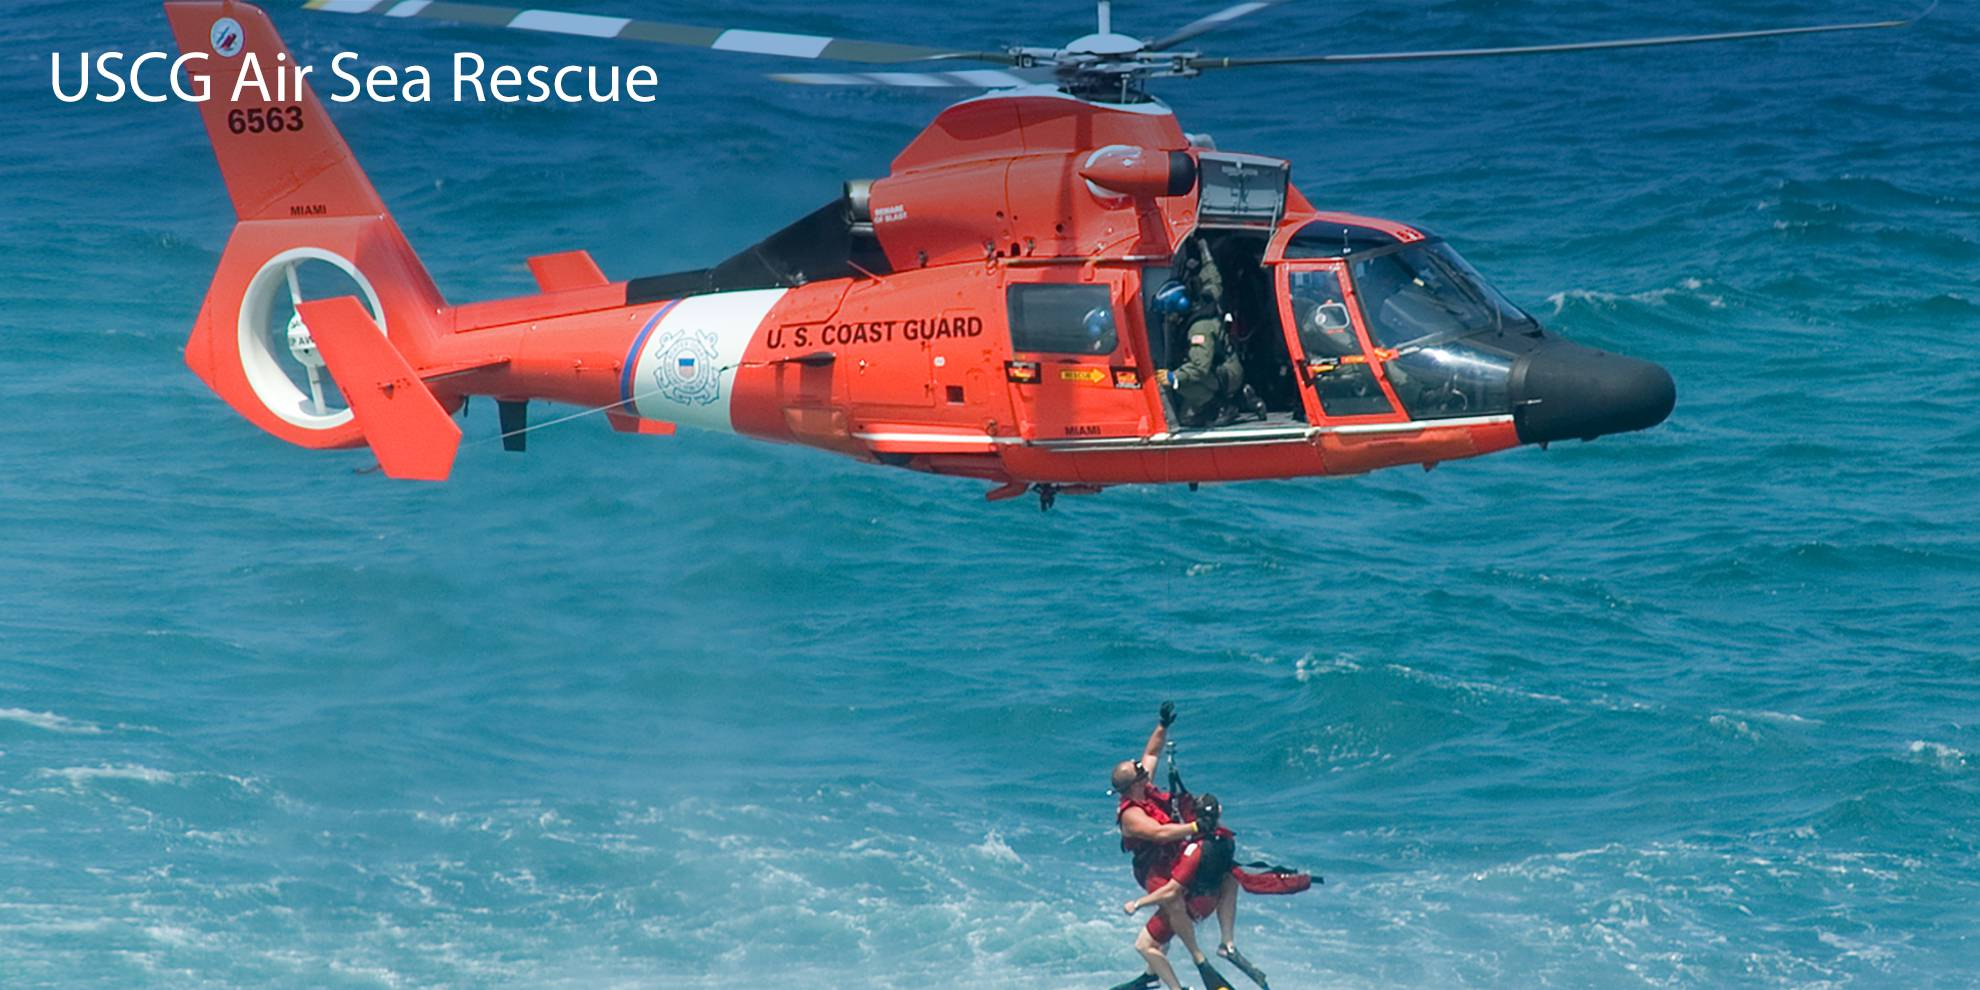 US COAST GUARD AIR SEA RESCUE DEMONSTRATION